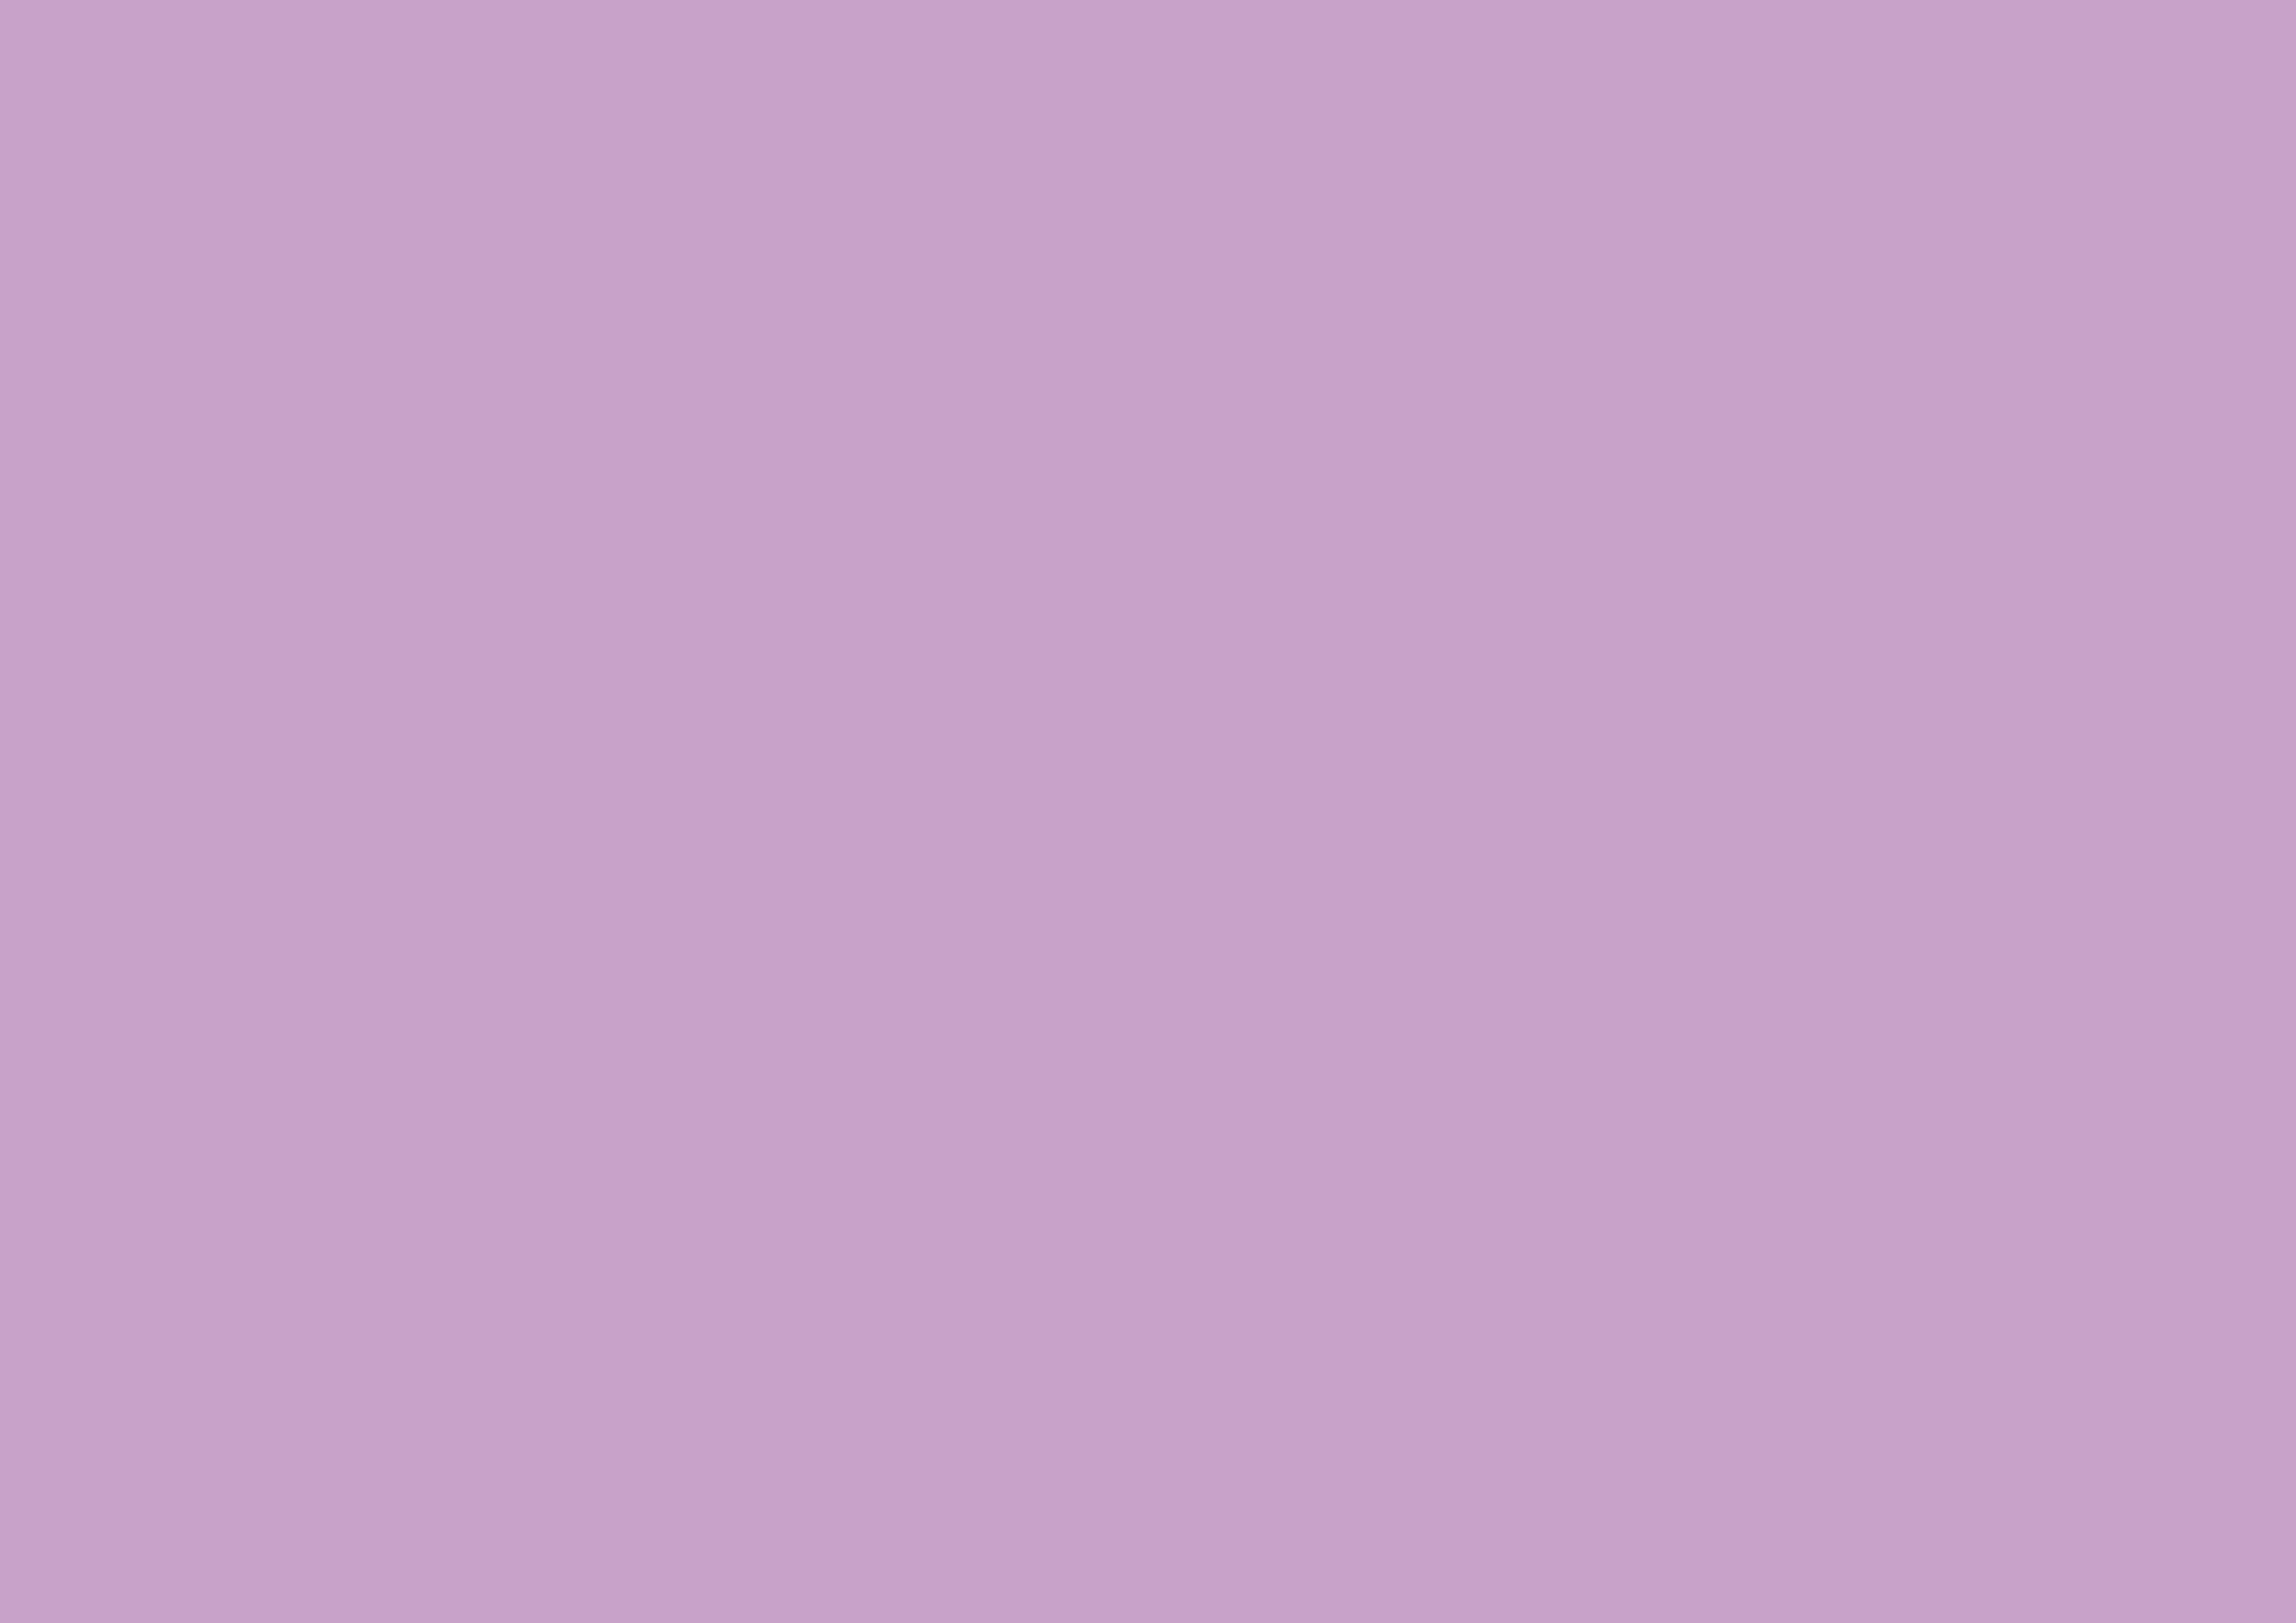 3508x2480 Lilac Solid Color Background